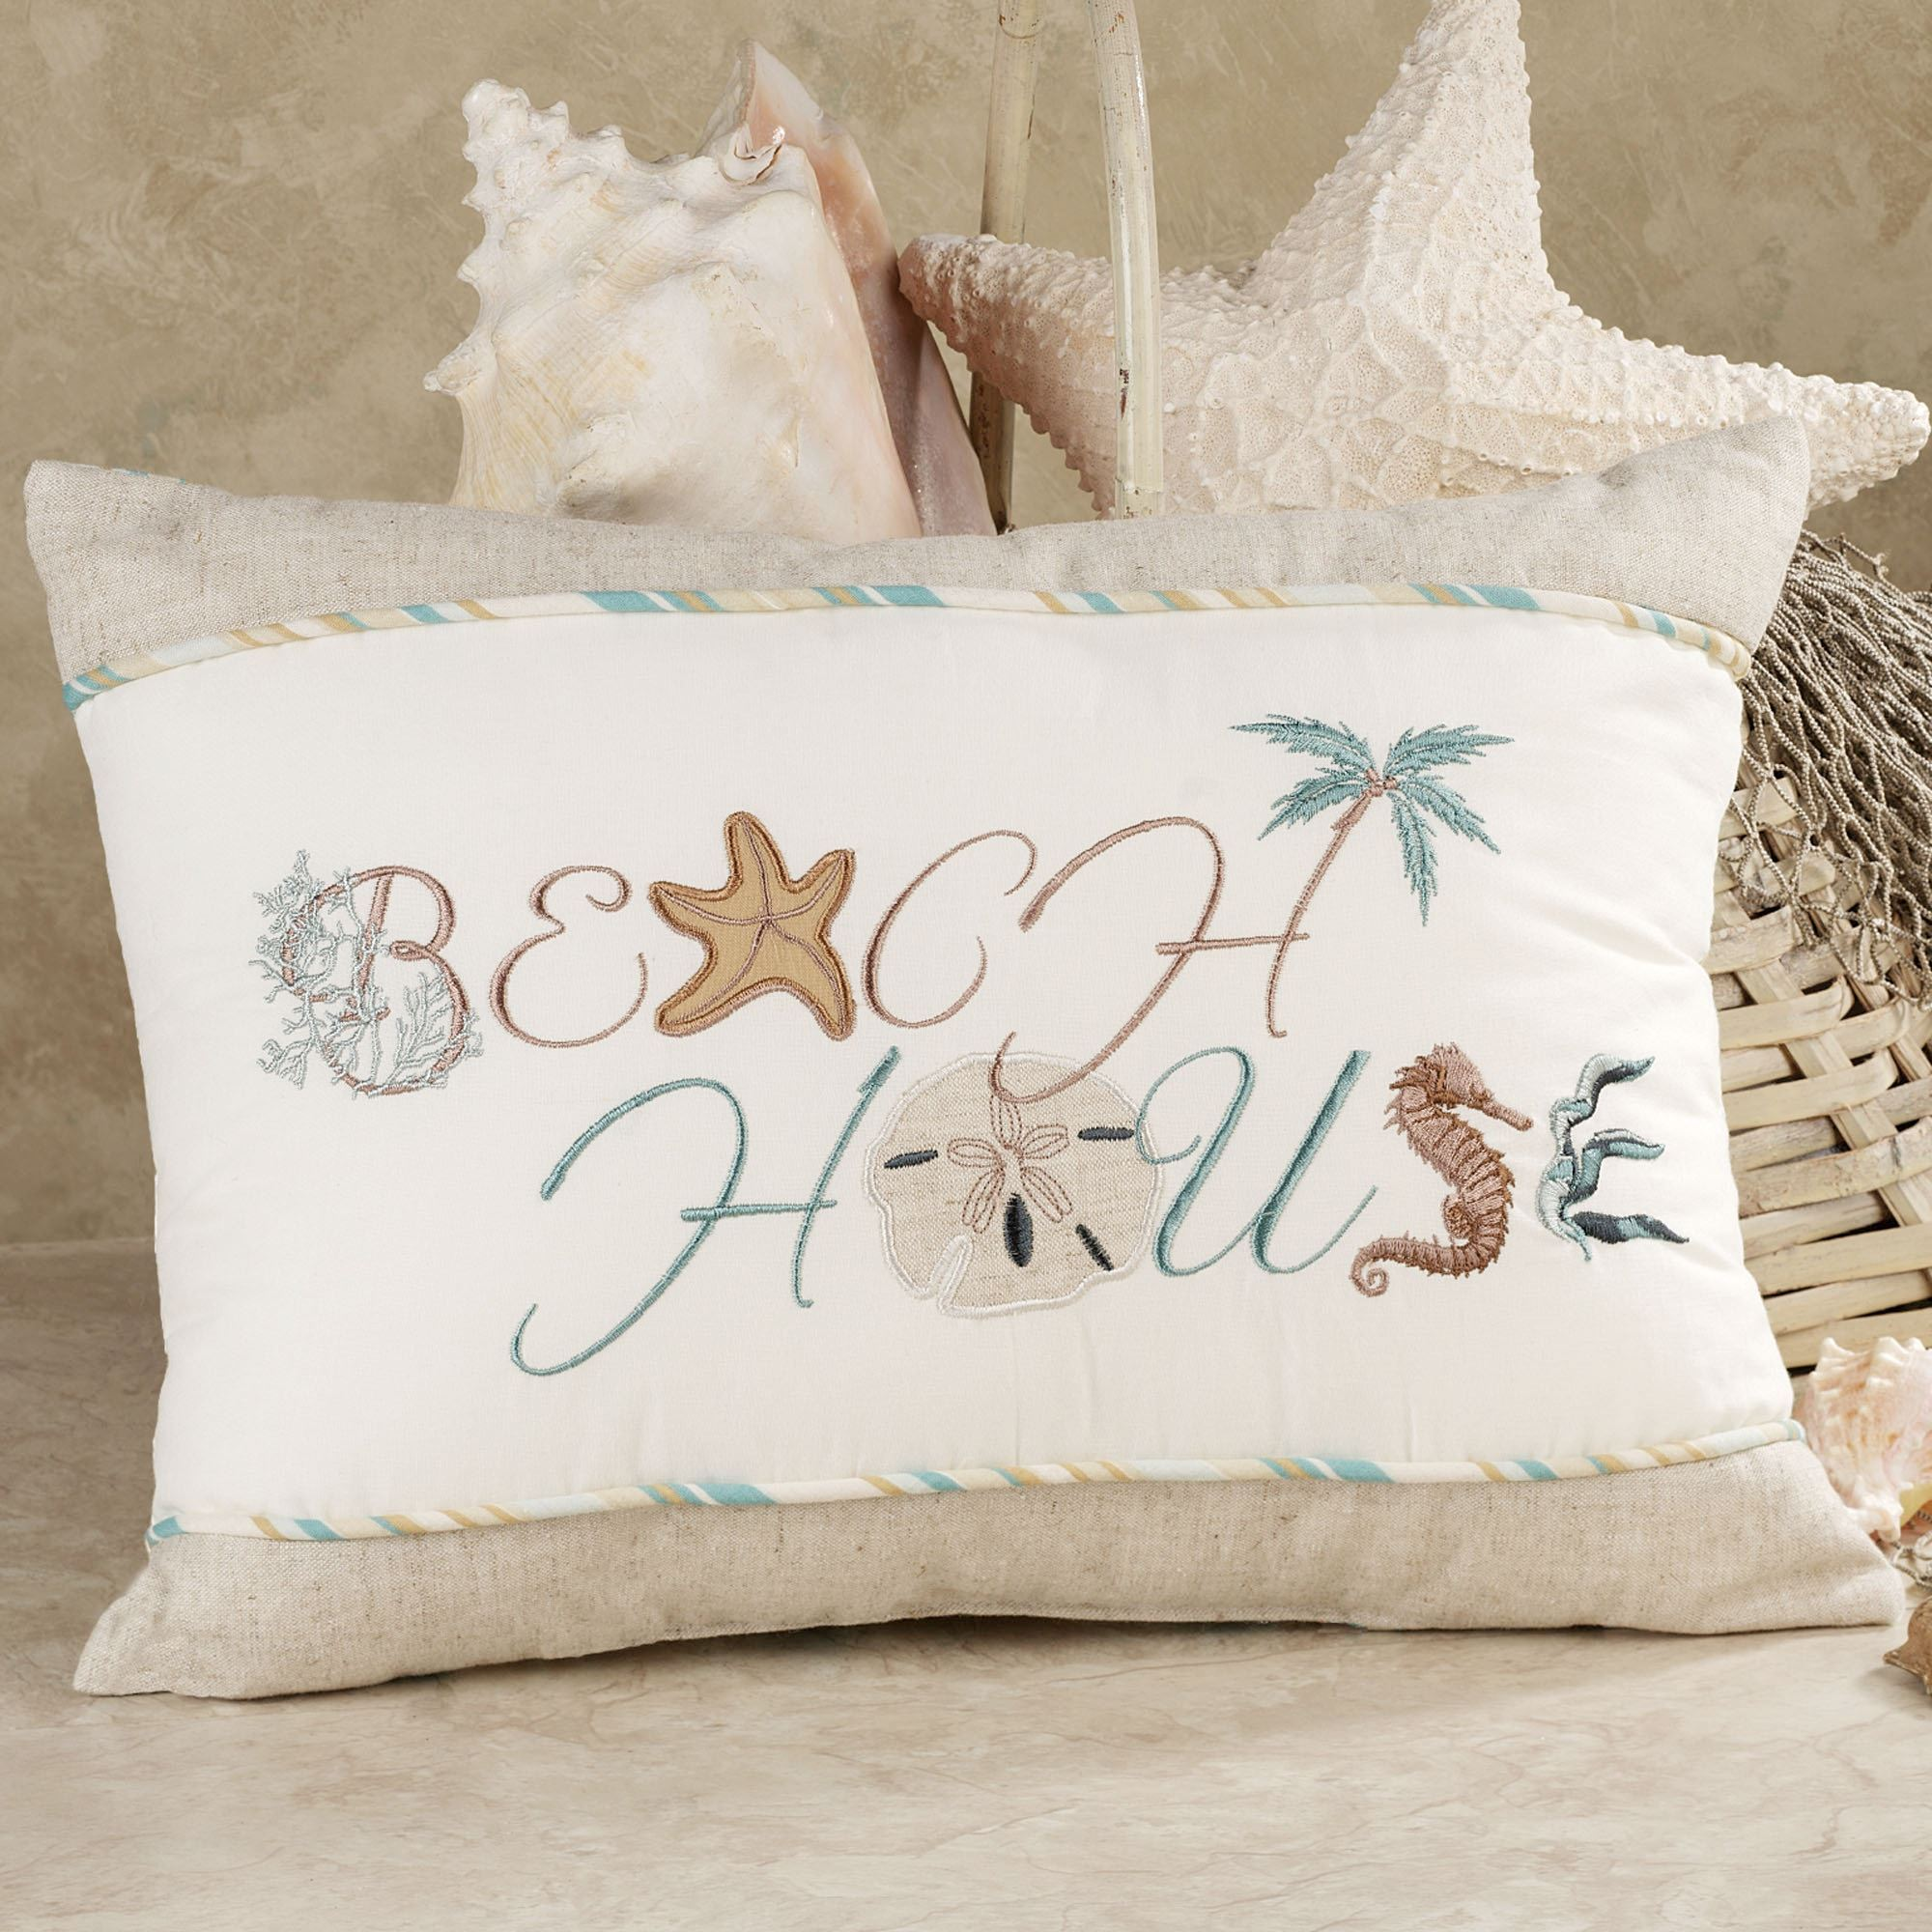 palm throw modern alt needlepoint discontinued pillows jonathan adler image beach pillow